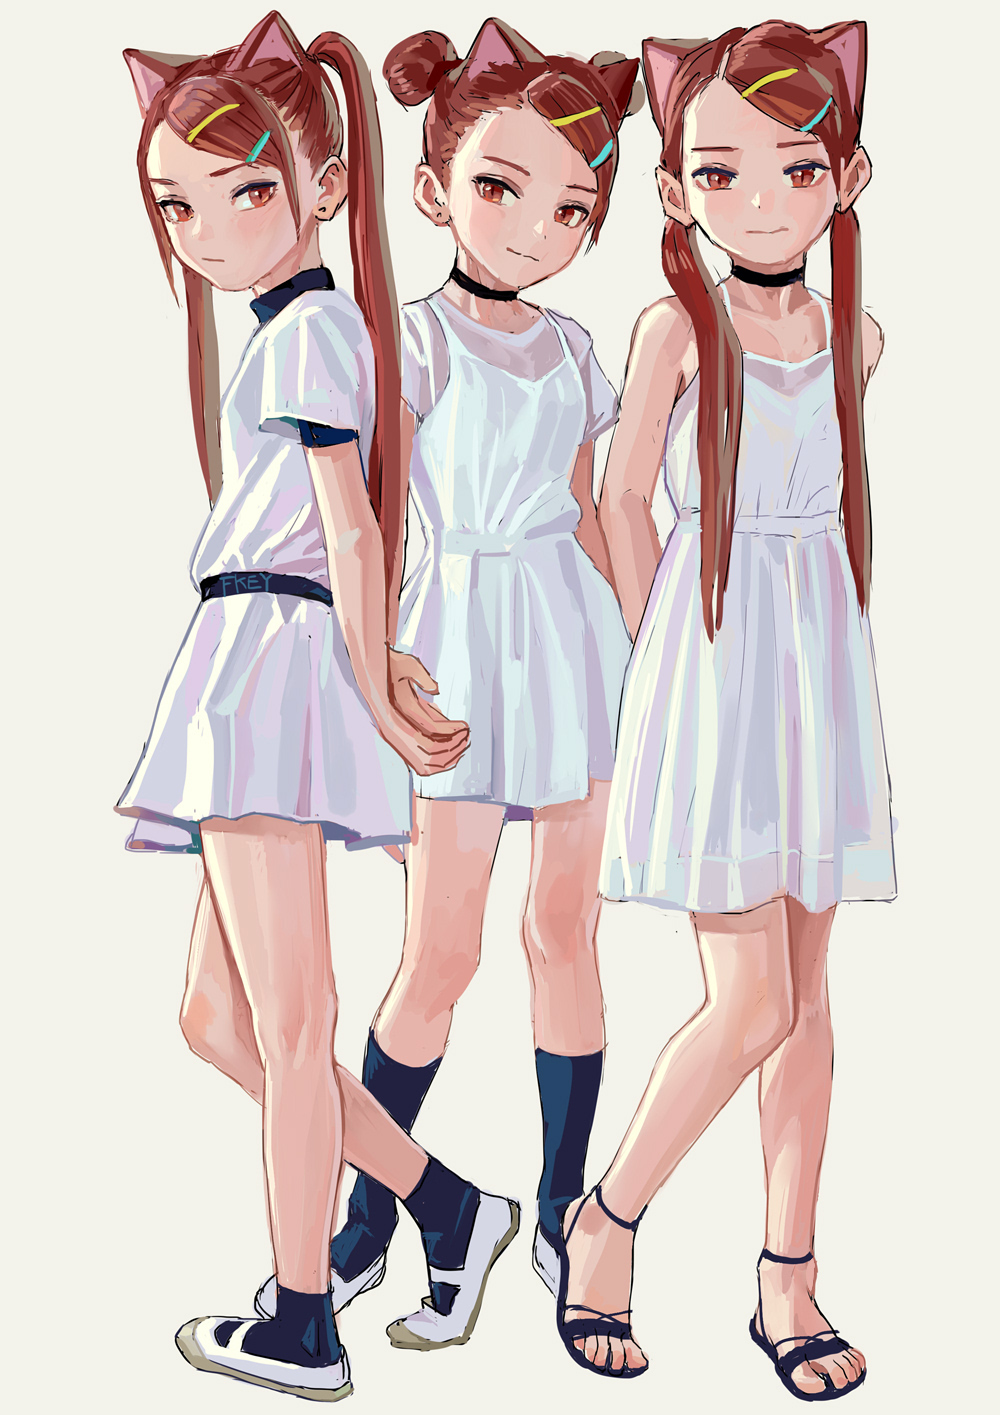 3girls animal_ears artist_name bangs bare_arms bare_shoulders black_choker black_footwear brown_eyes brown_hair cat_ears choker closed_mouth double_bun dress fkey grey_background hair_ornament hairclip head_tilt highres kneehighs long_hair multiple_girls navy_blue_legwear original sandals shoes short_sleeves simple_background sleeveless sleeveless_dress smile socks standing standing_on_one_leg swept_bangs twintails uwabaki very_long_hair white_dress white_footwear